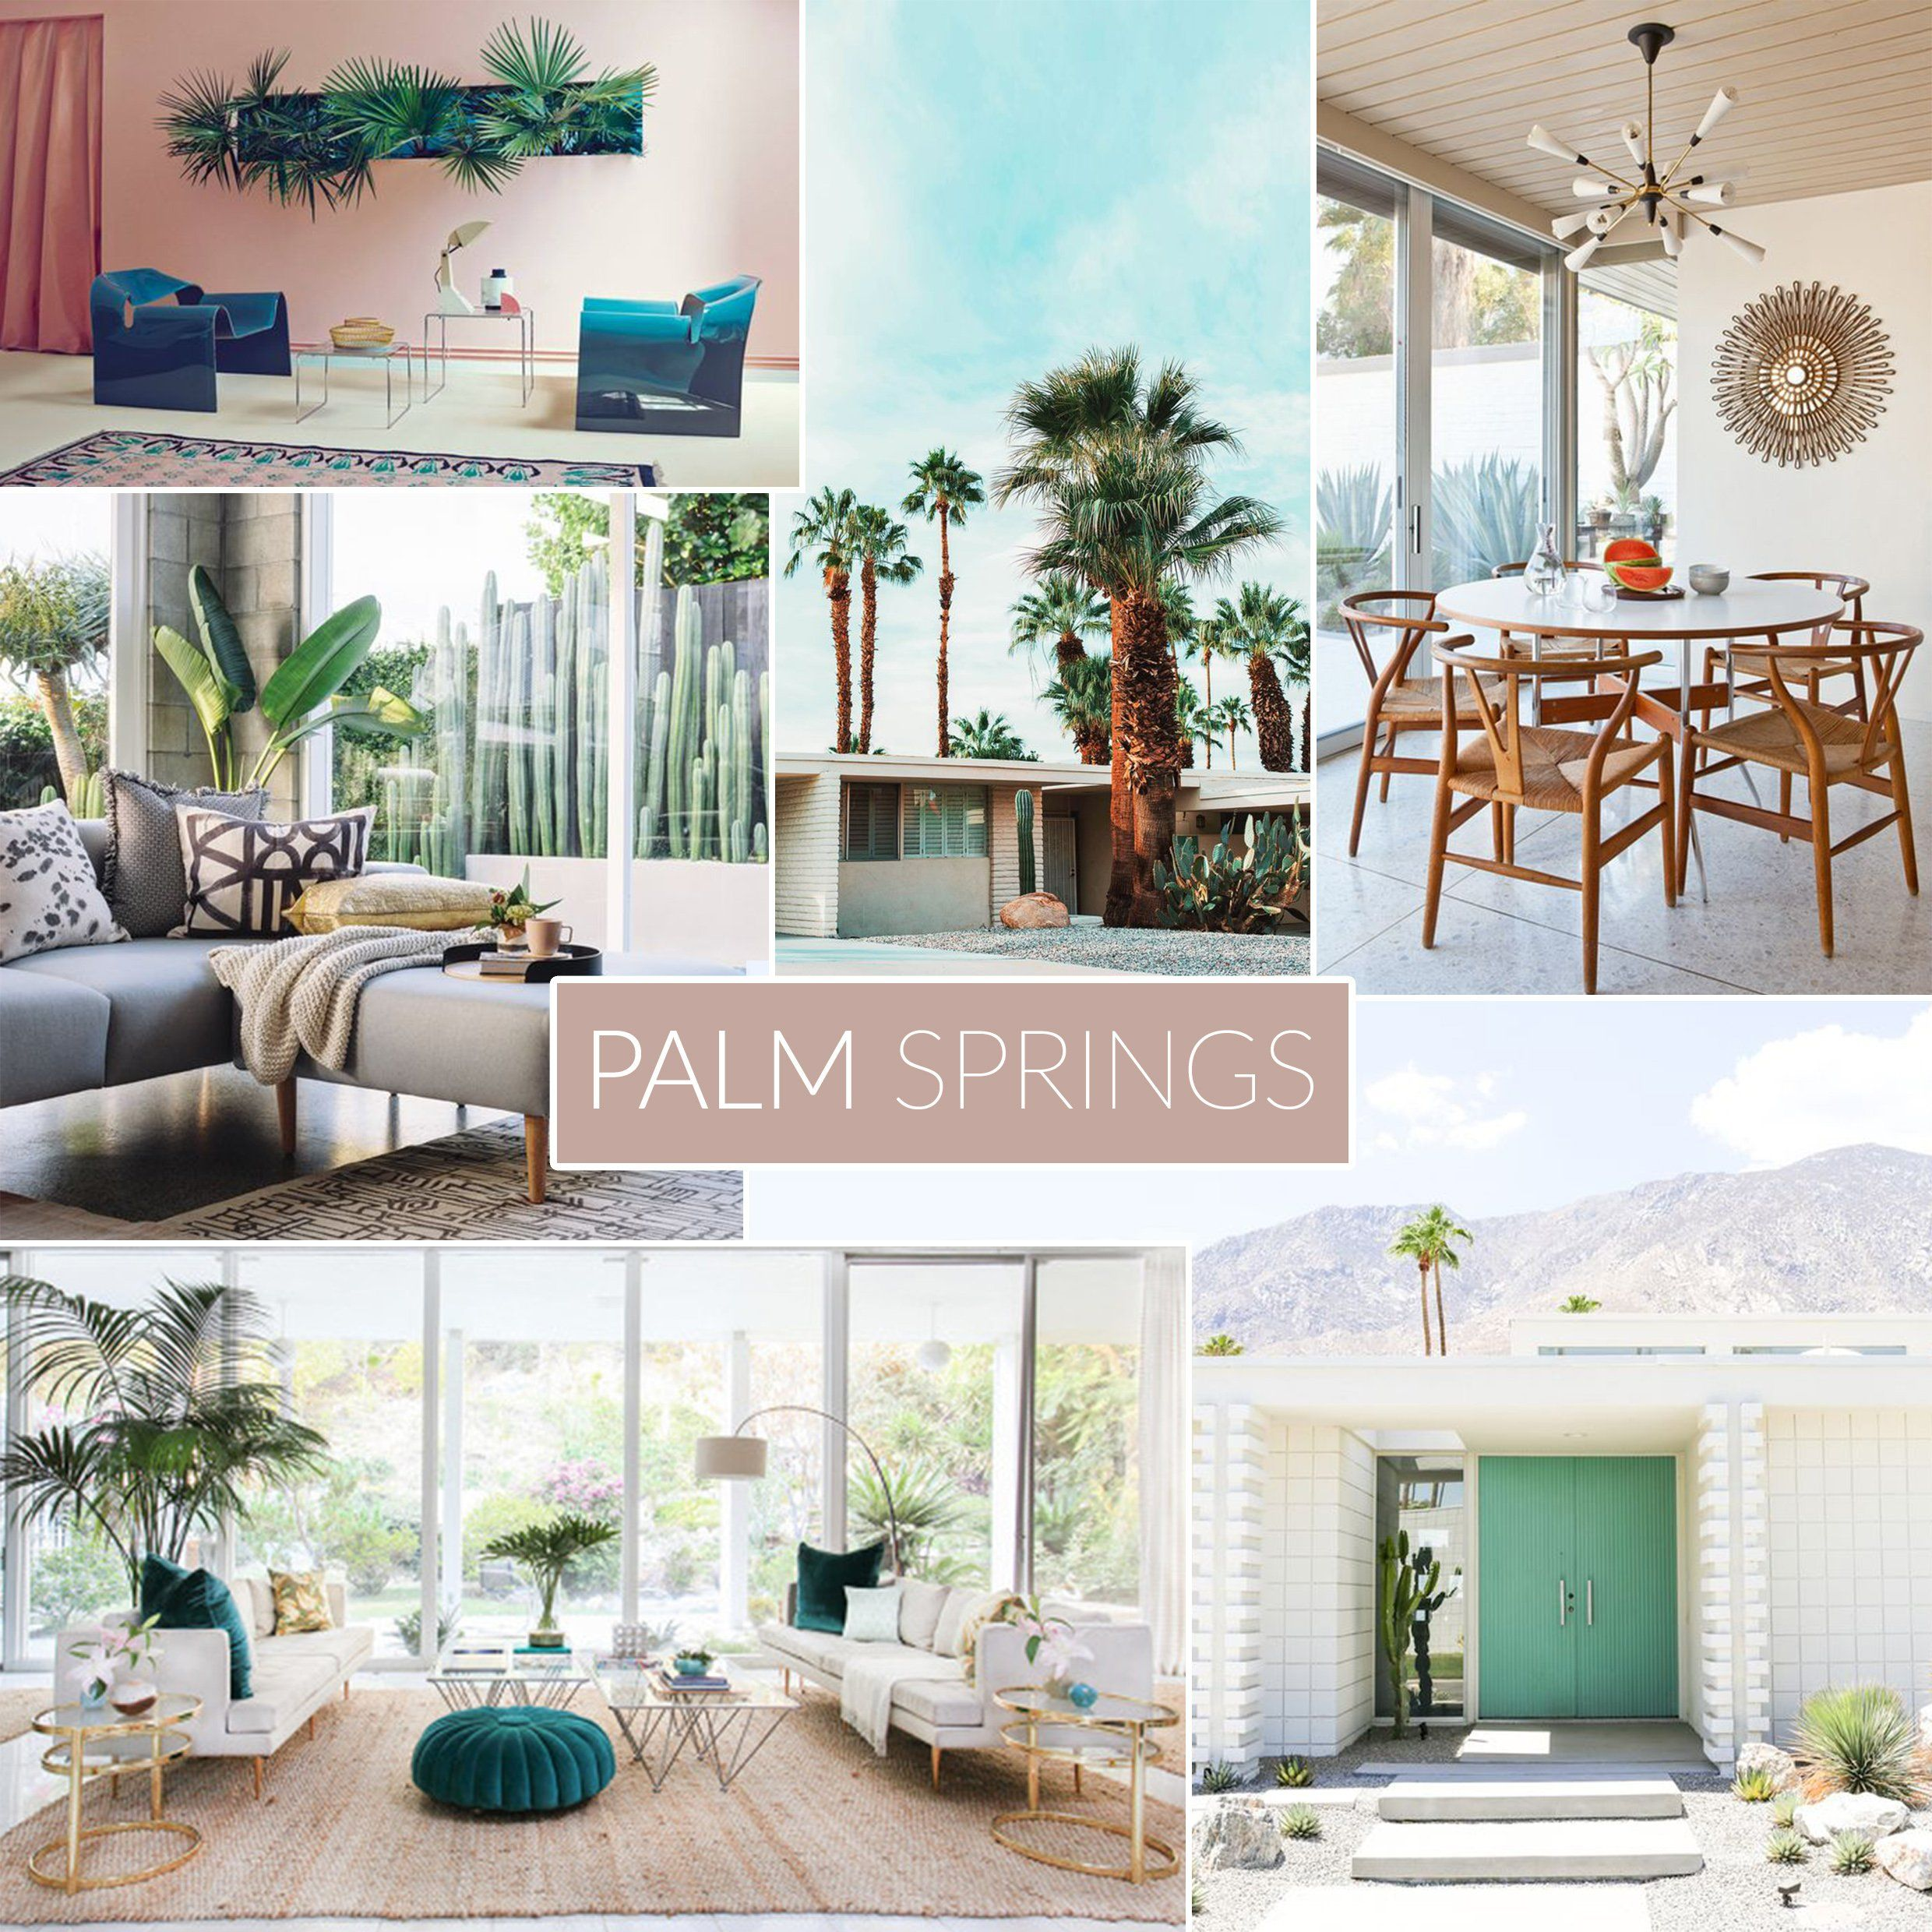 Image Result For Palm Spring Interiors Palm Springs Interior Design Spring Interiors Interior Design Styles